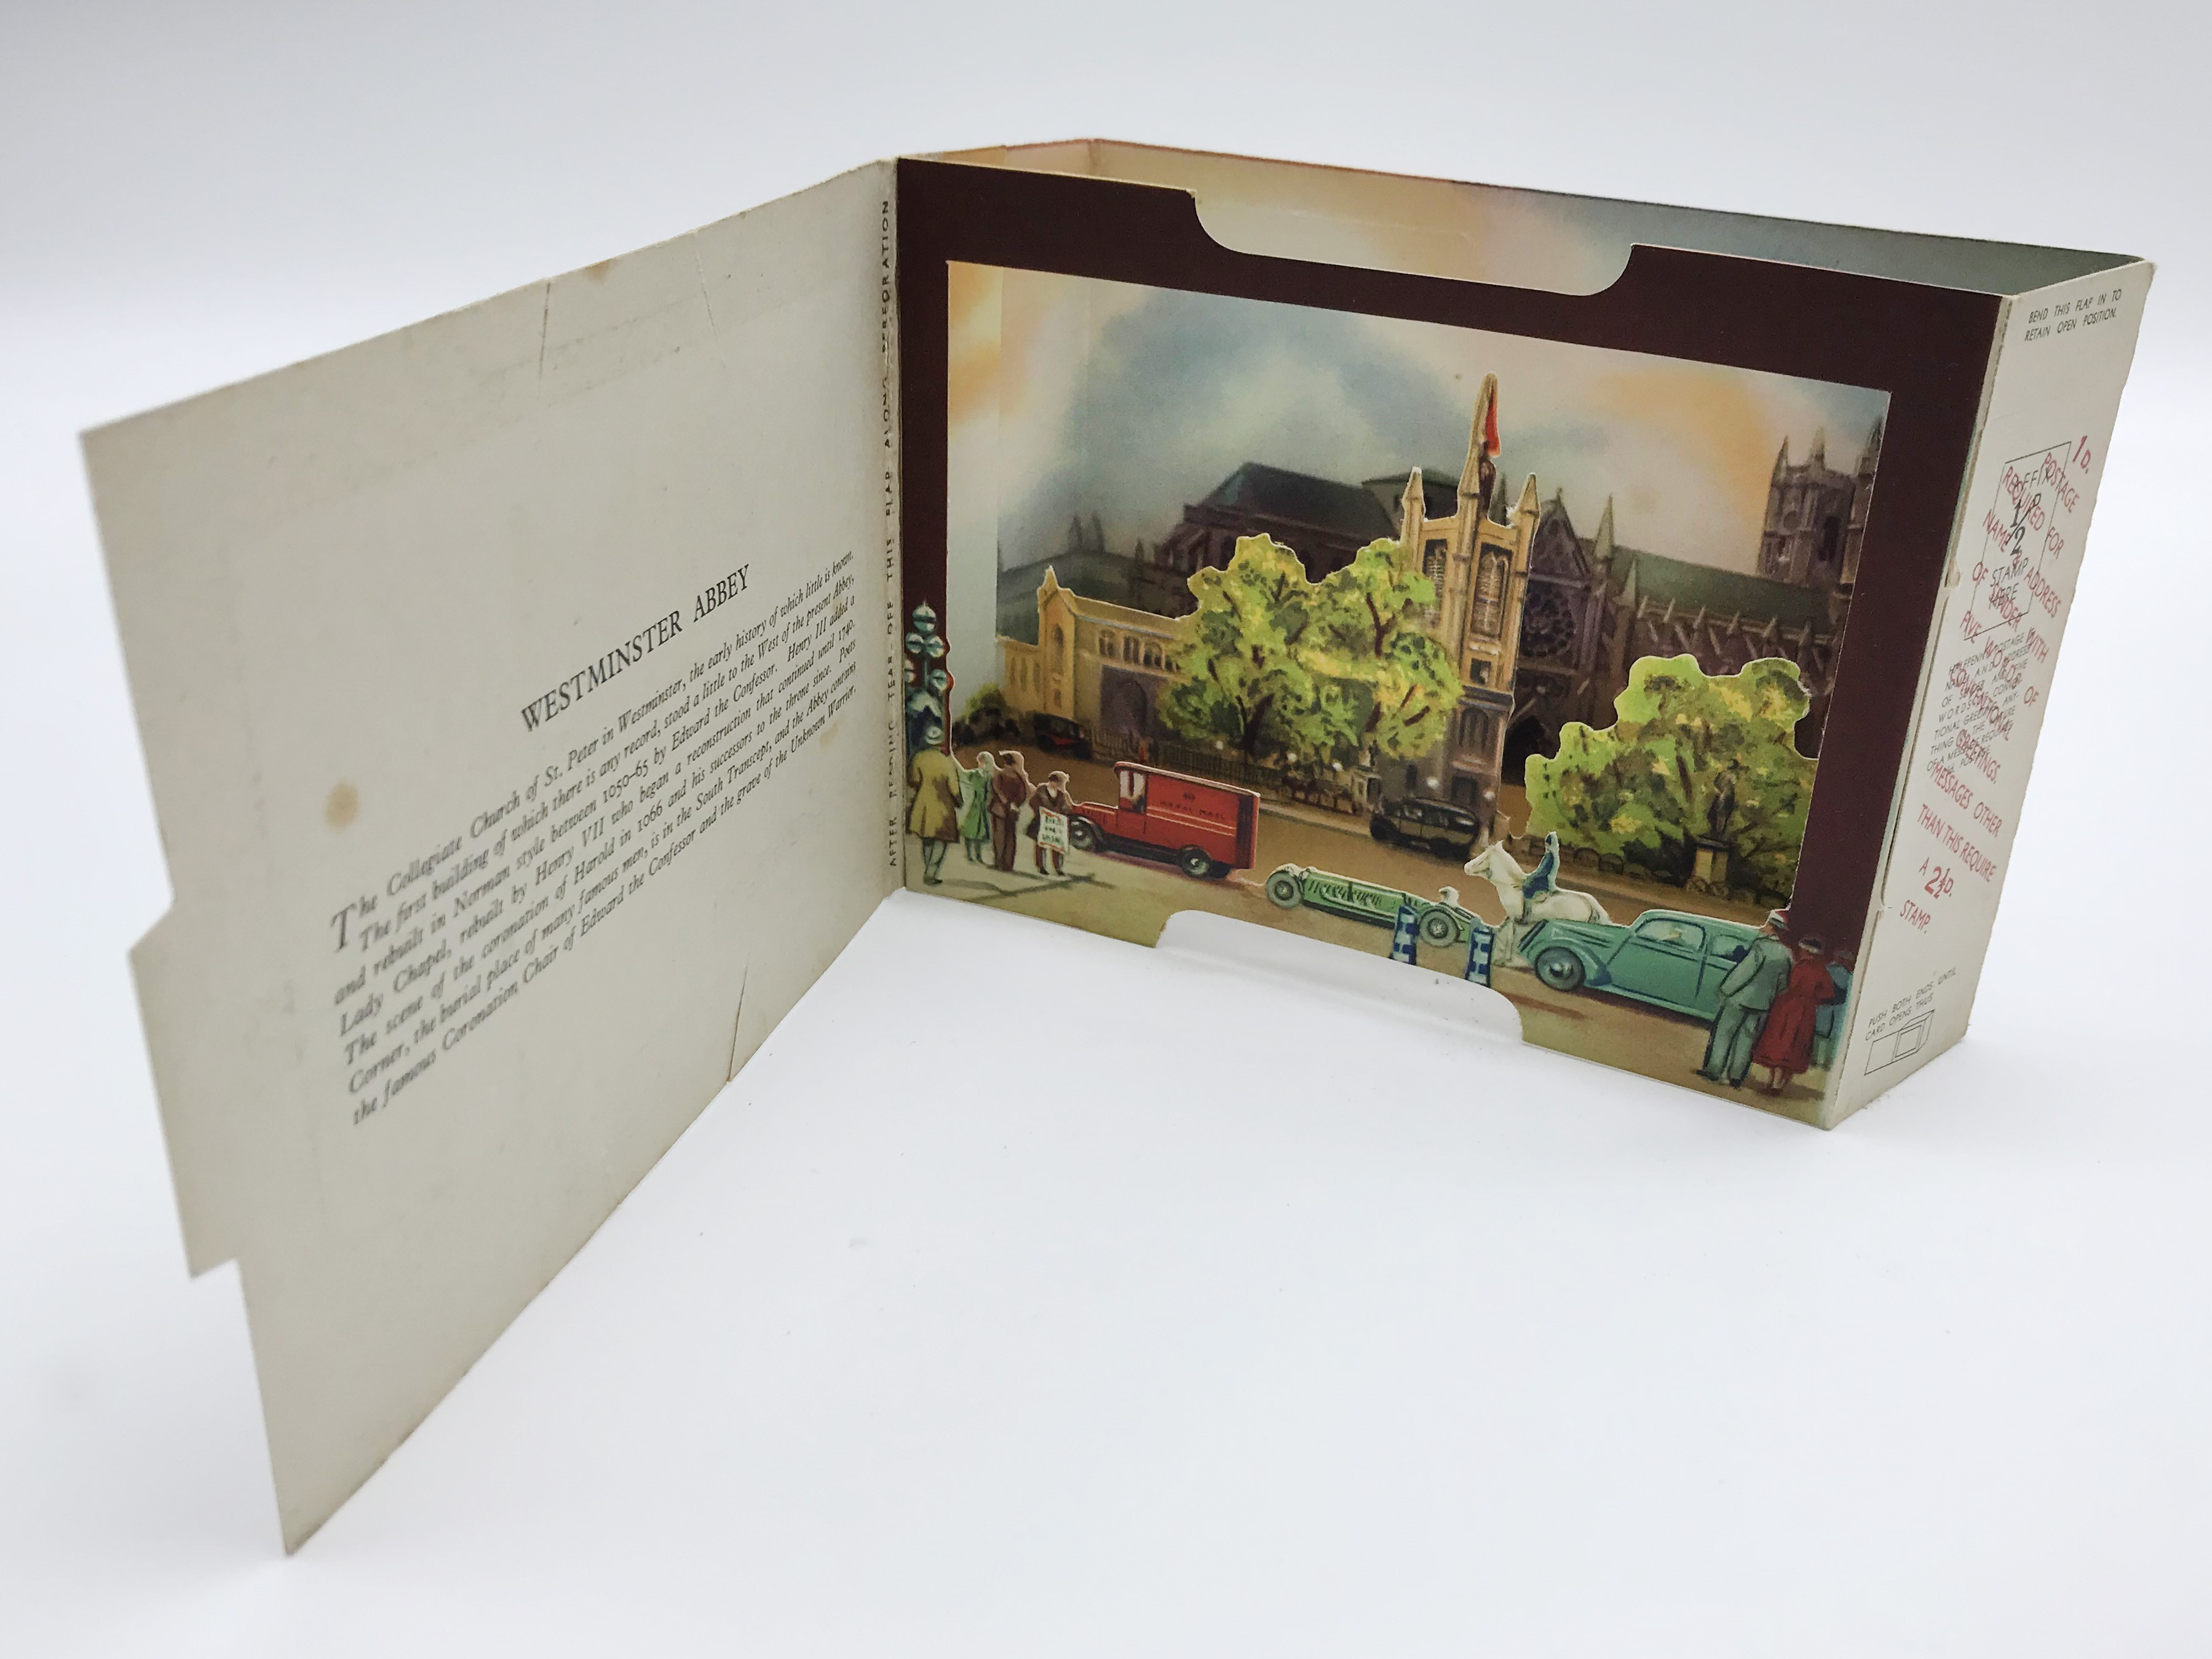 FIVE LONDON POSTCARDS - THE BRENT SERIES OF PANORAMIC VIEW CARDS - Image 6 of 13